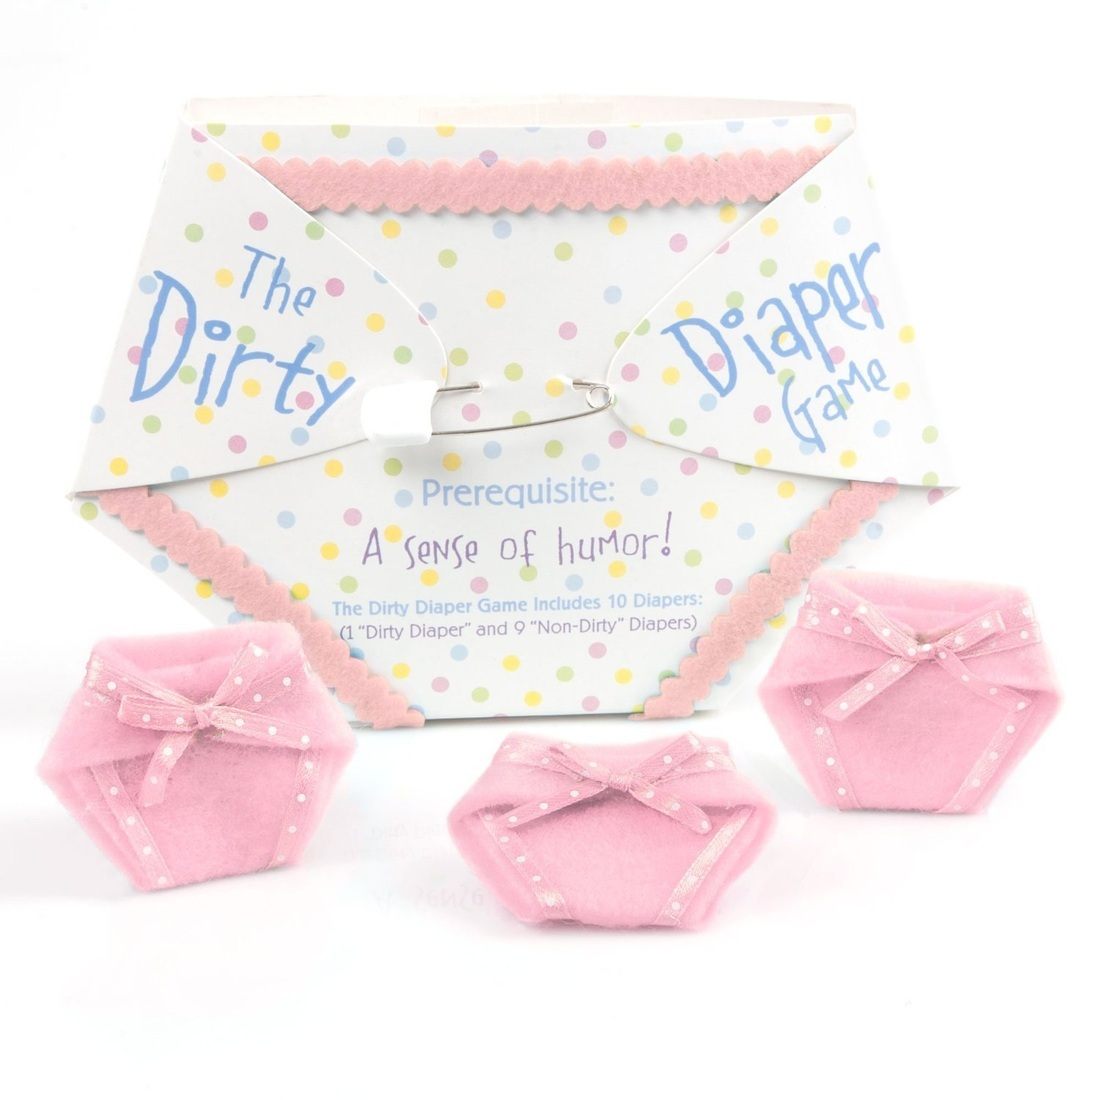 The Dirty Diaper Game - Pink